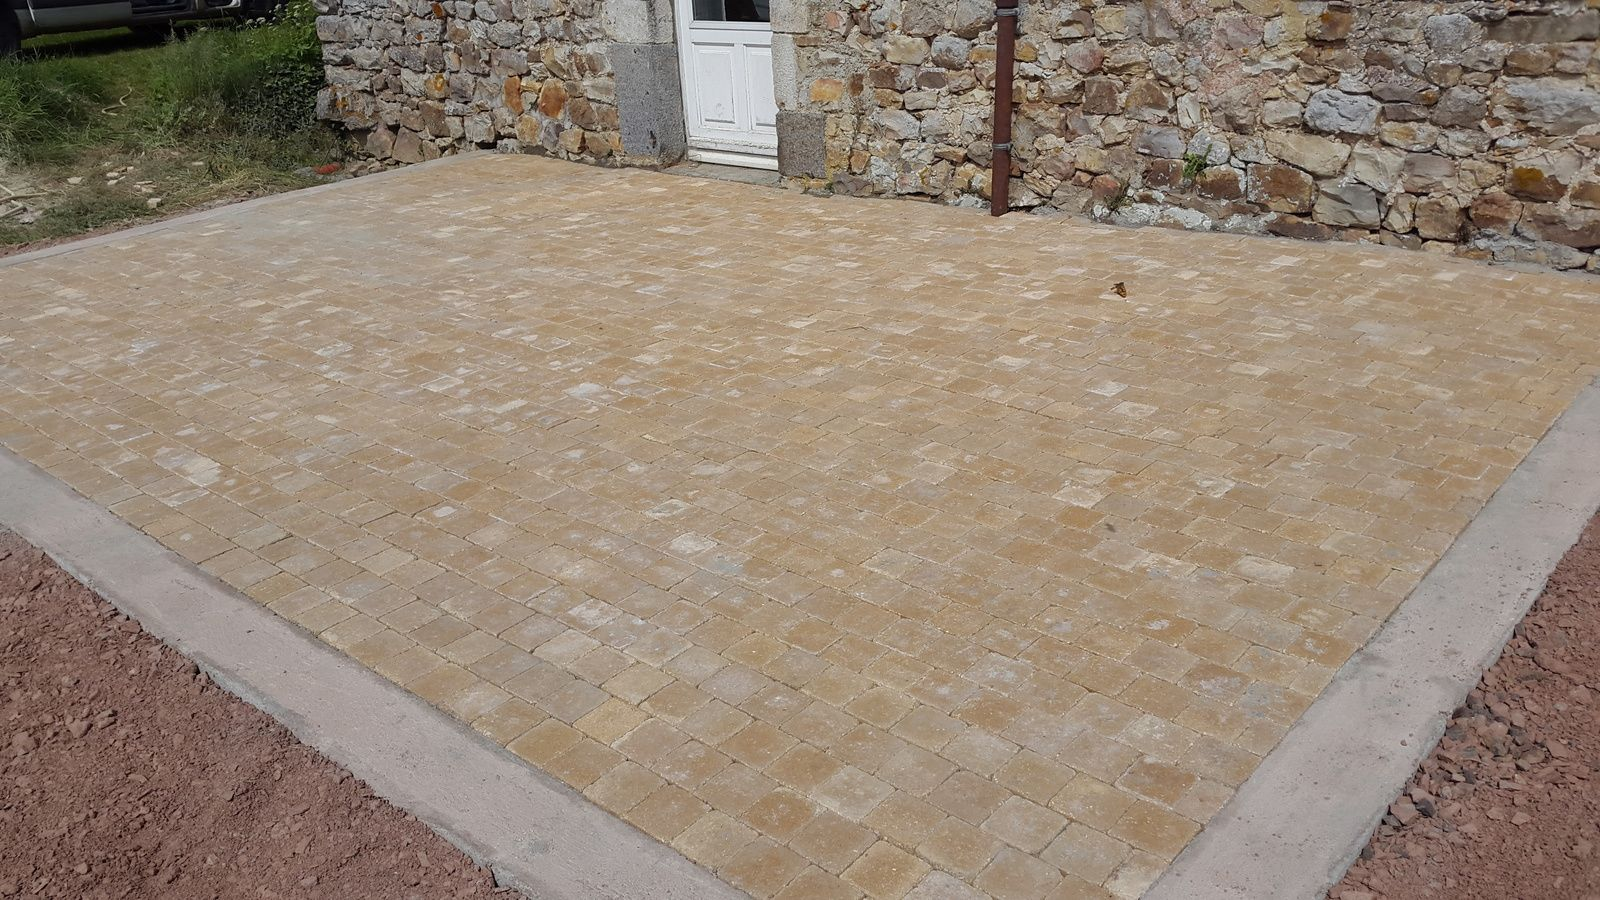 Creation terrasse en pav 14 14 hlmultiservices - Terrasse en carreaux de ciment ...